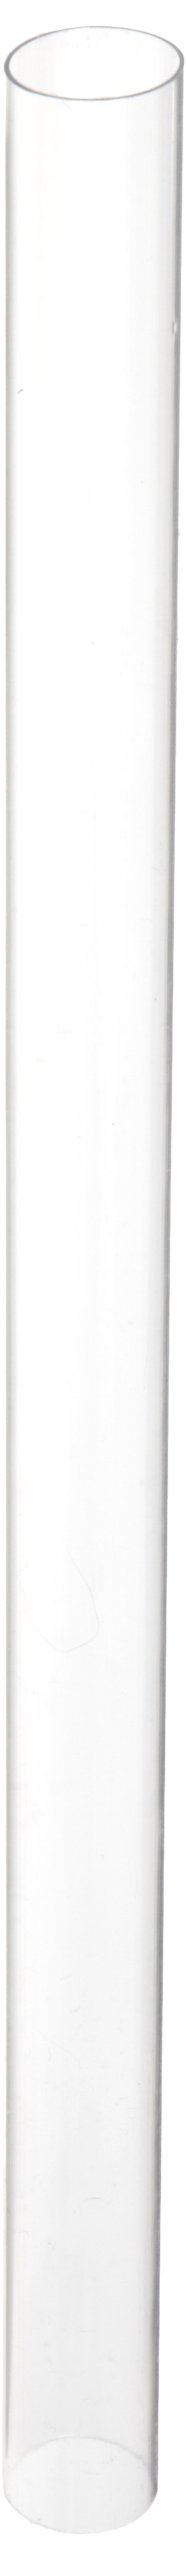 Heathrow Scientific HD23210 Clear Plastic Cryogenic Cane Sleeves, 275mm Length (Pack of 100)